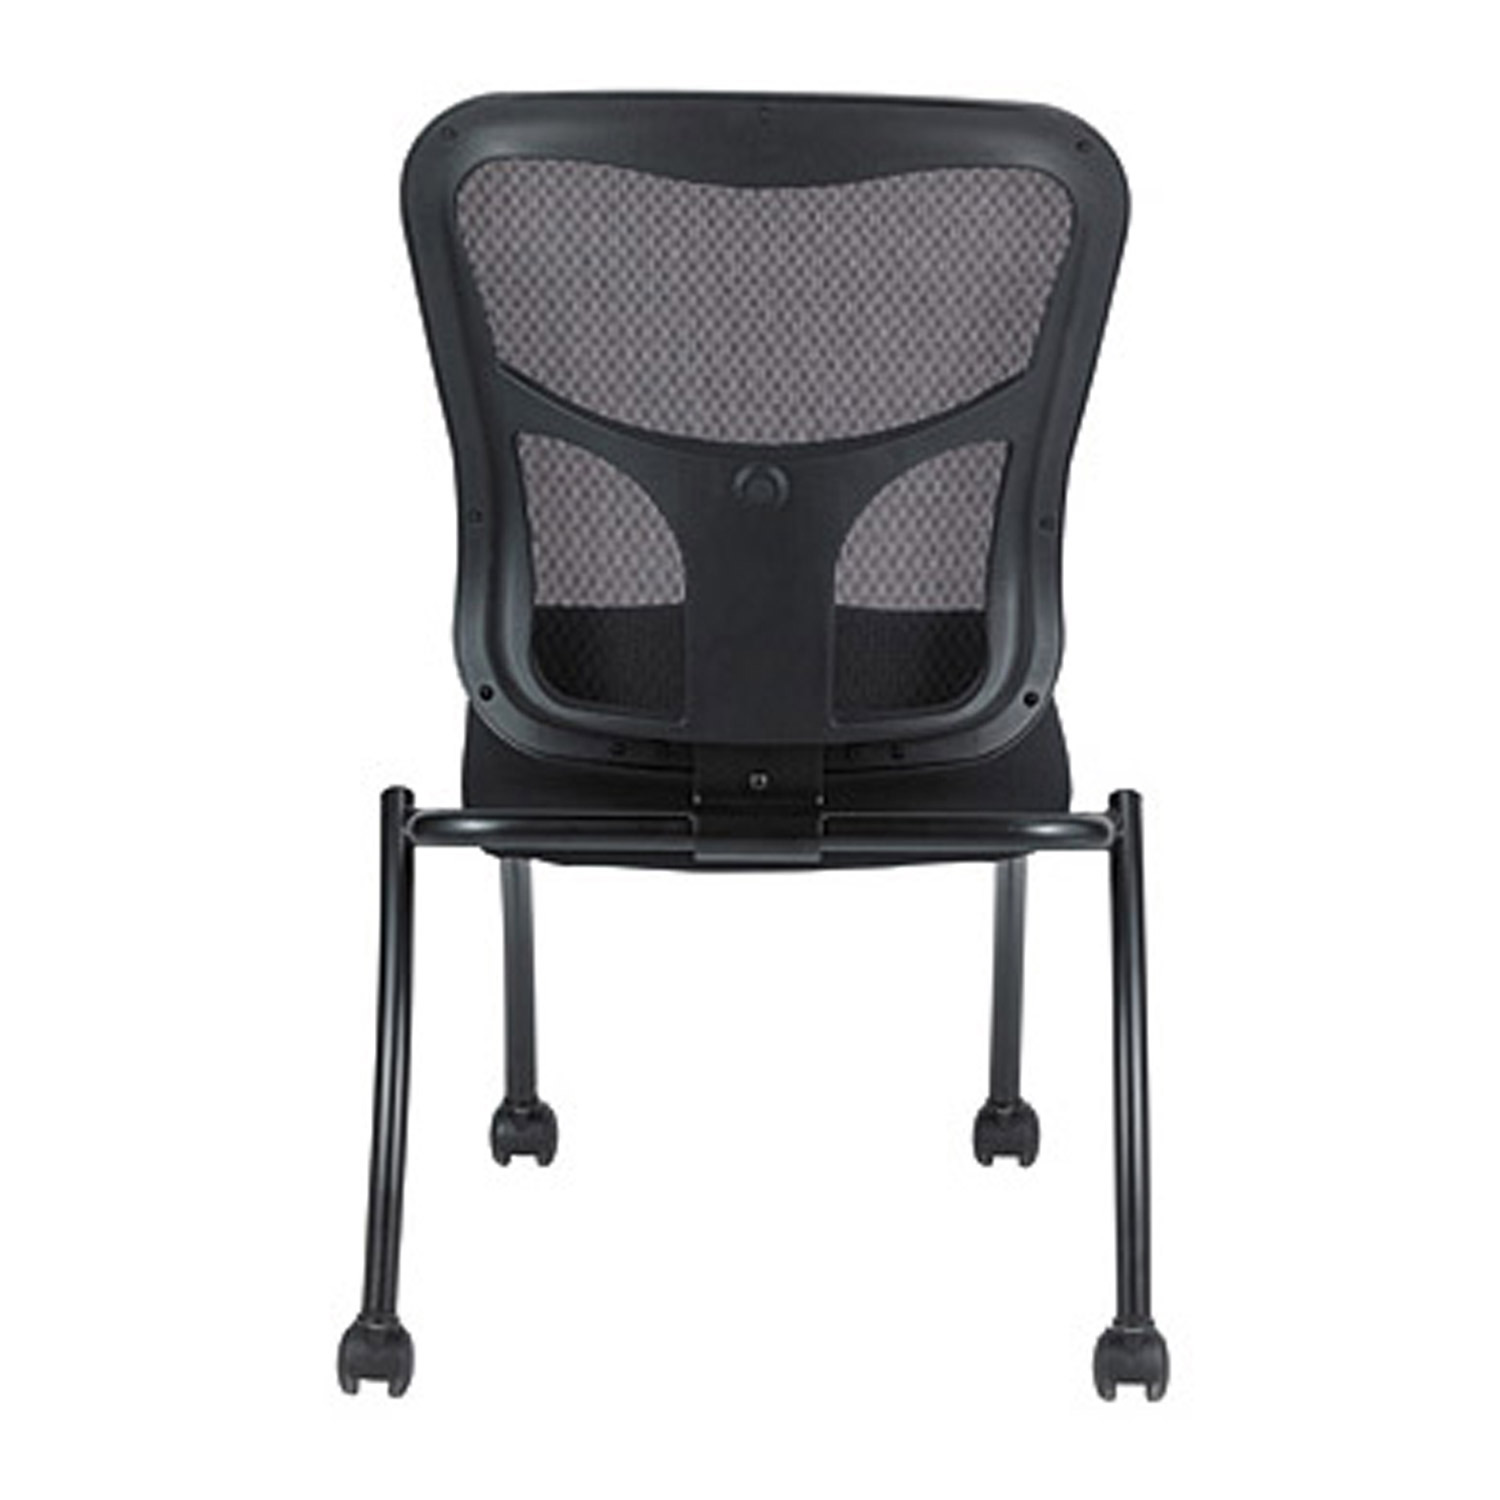 folding executive chair diy wood chairs armless 0ffice guest office furniture